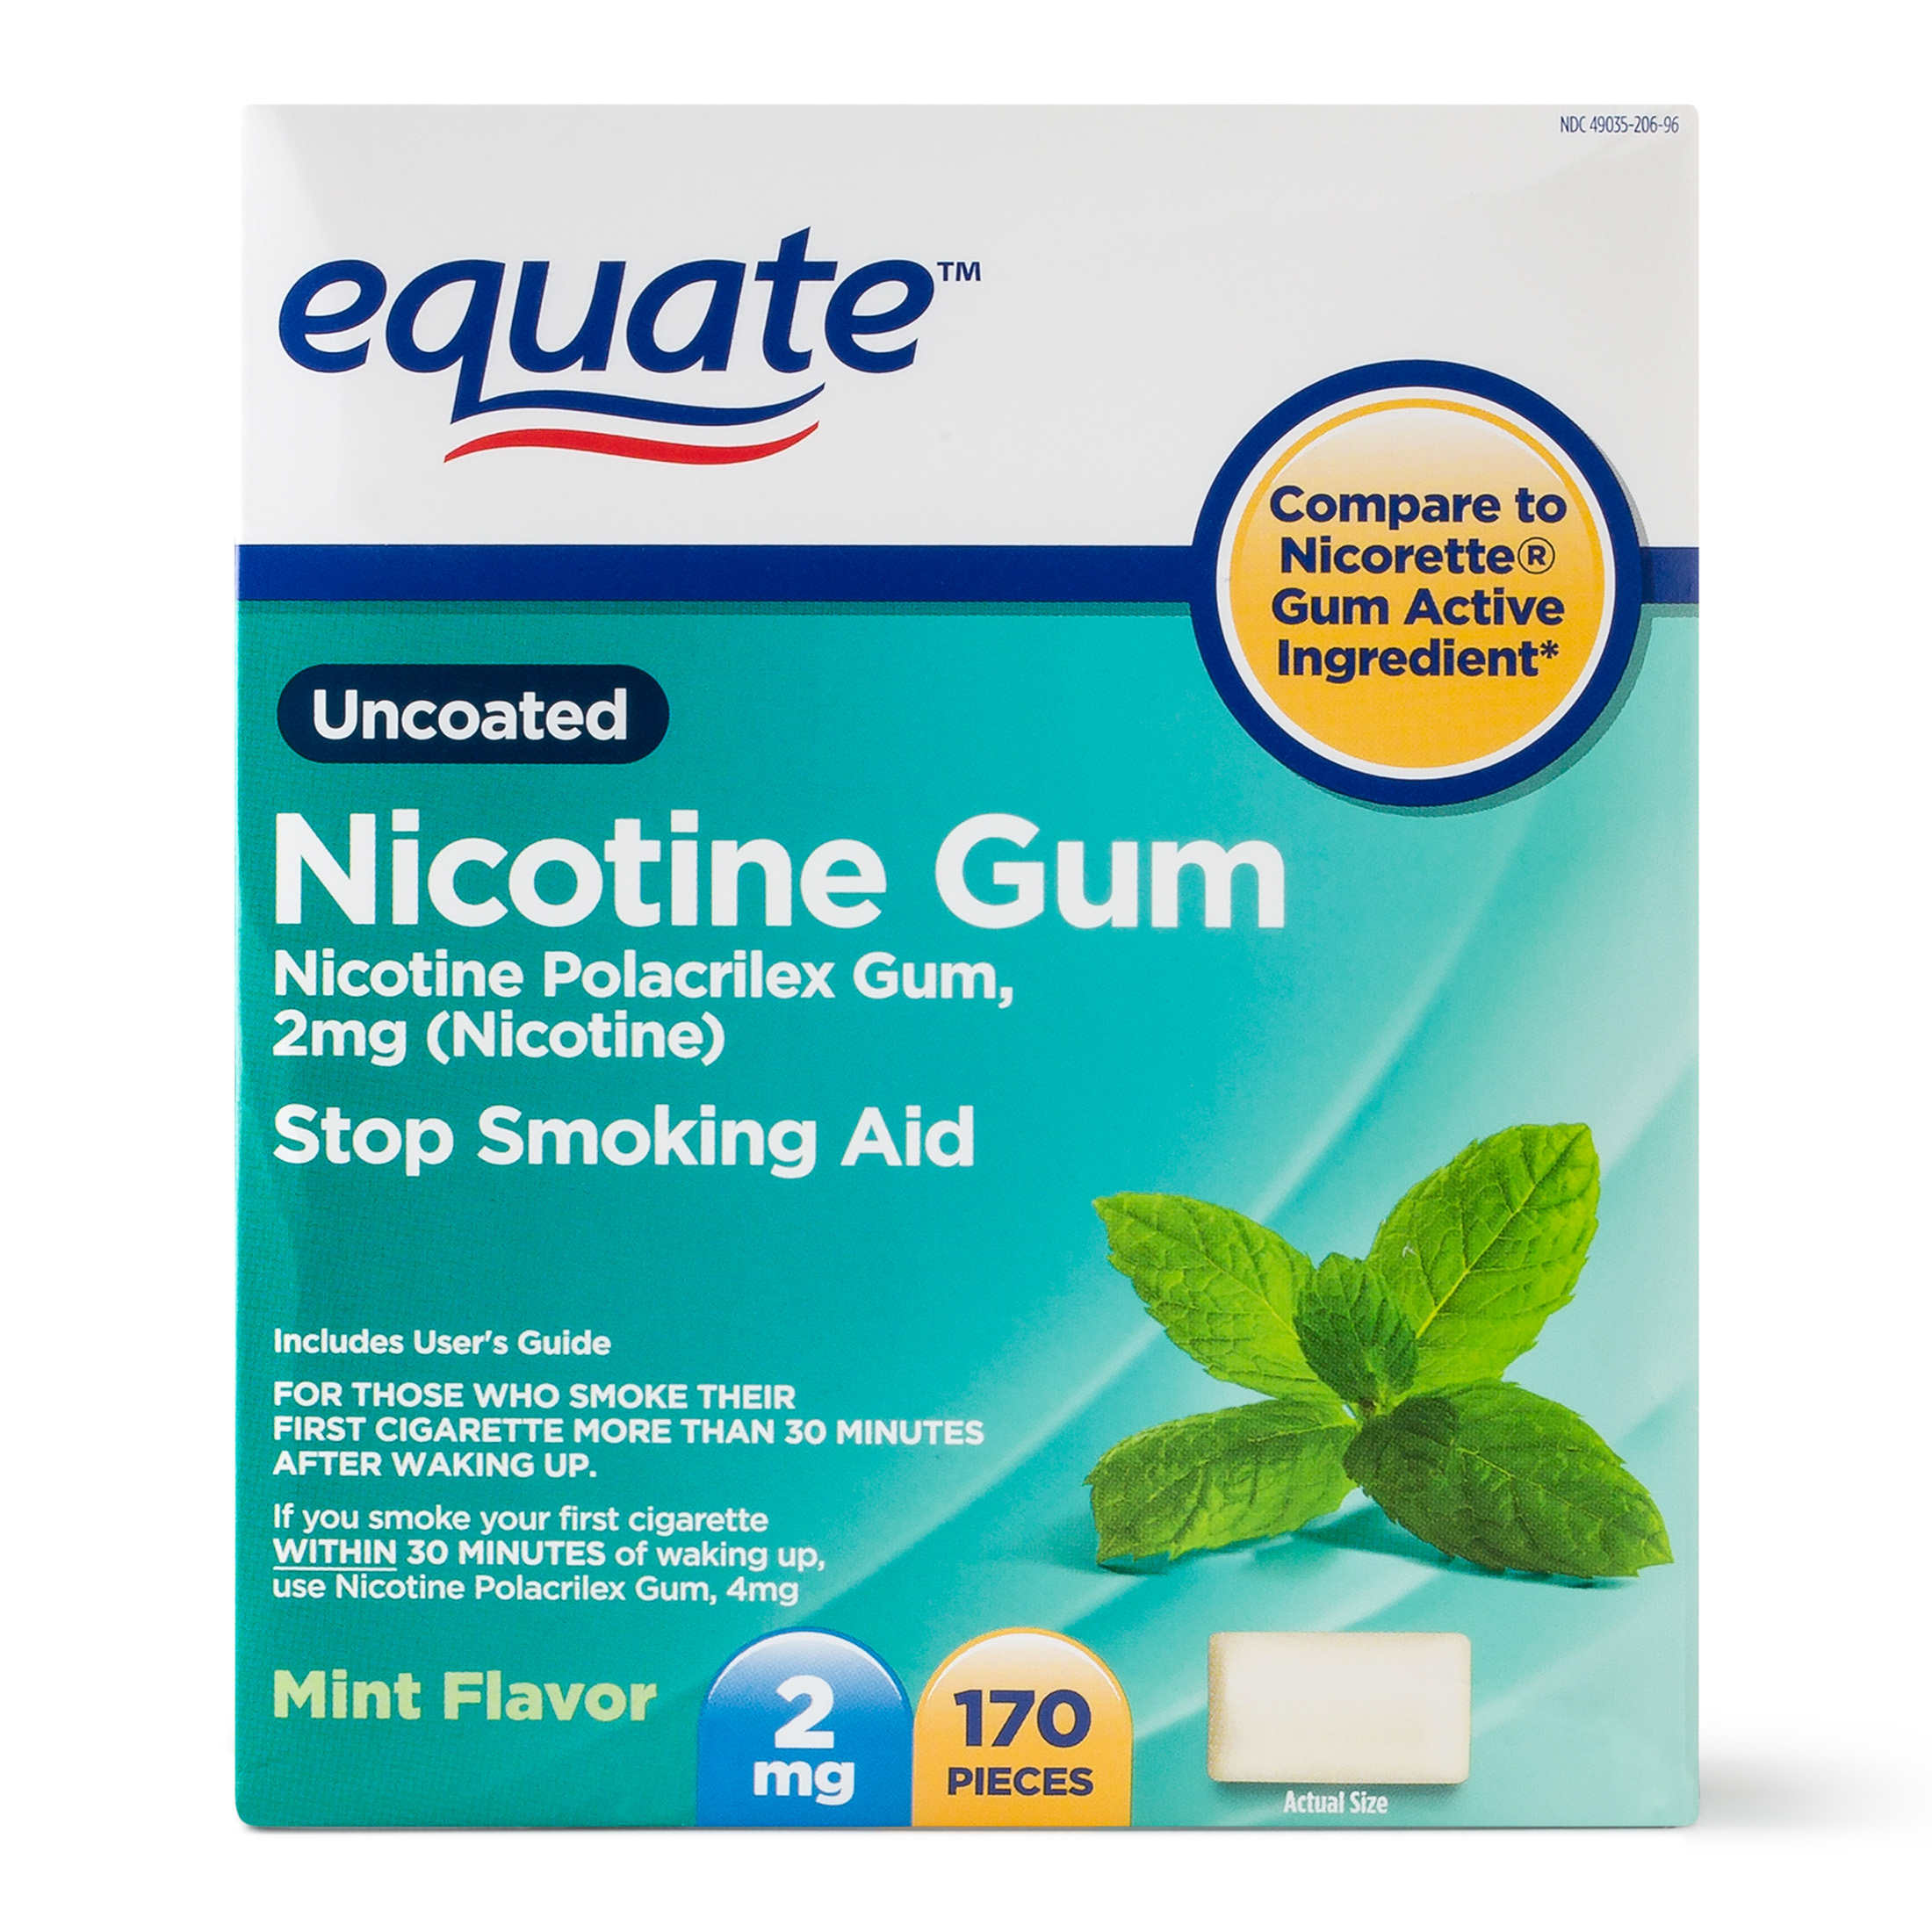 Equate Uncoated Nicotine Gum Stop Smoking Aid Mint Flavor, 2 mg, 170 Ct